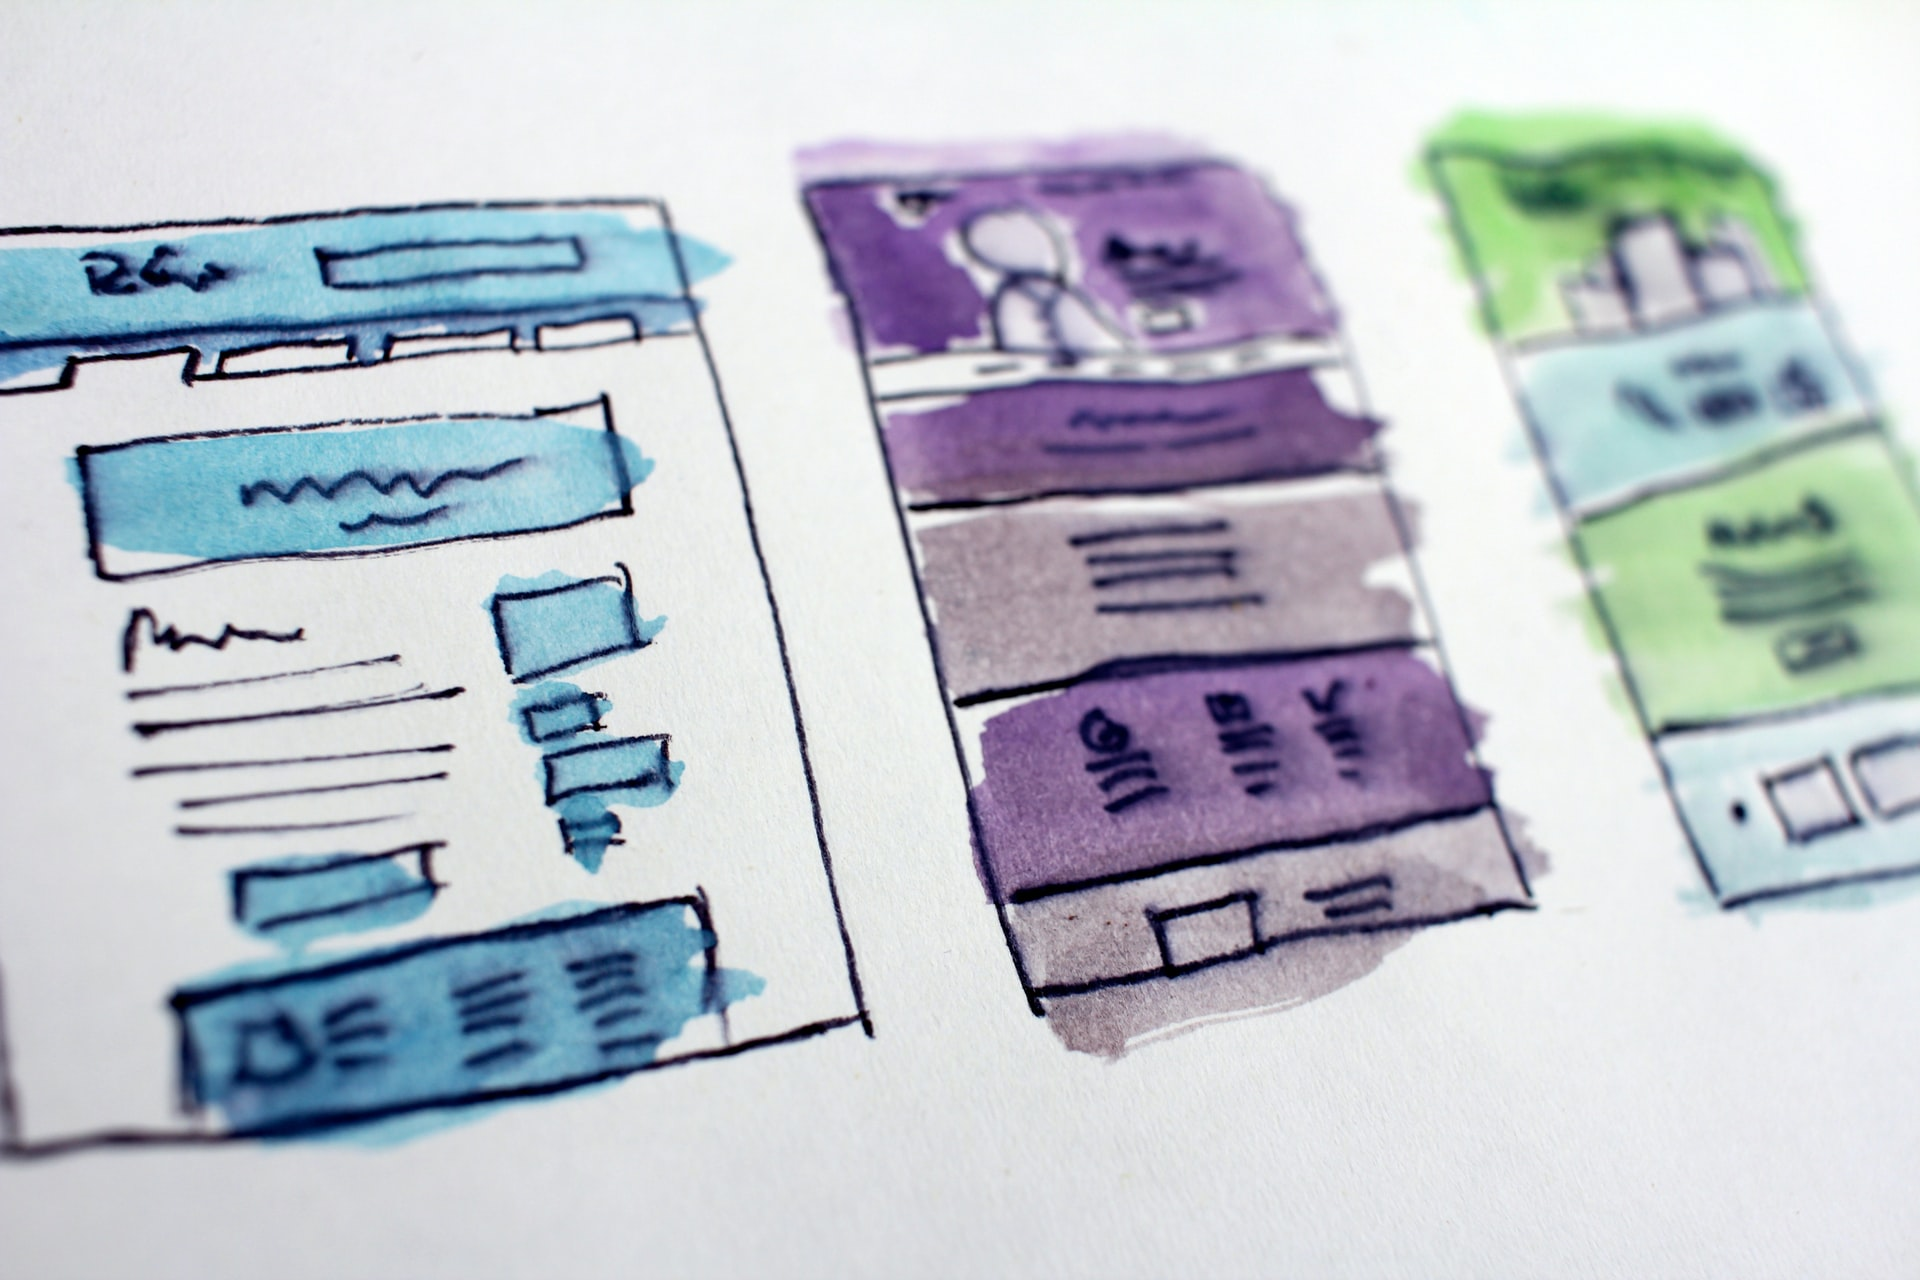 An image of 3 low fidelity mobile mockups, done in watercolour